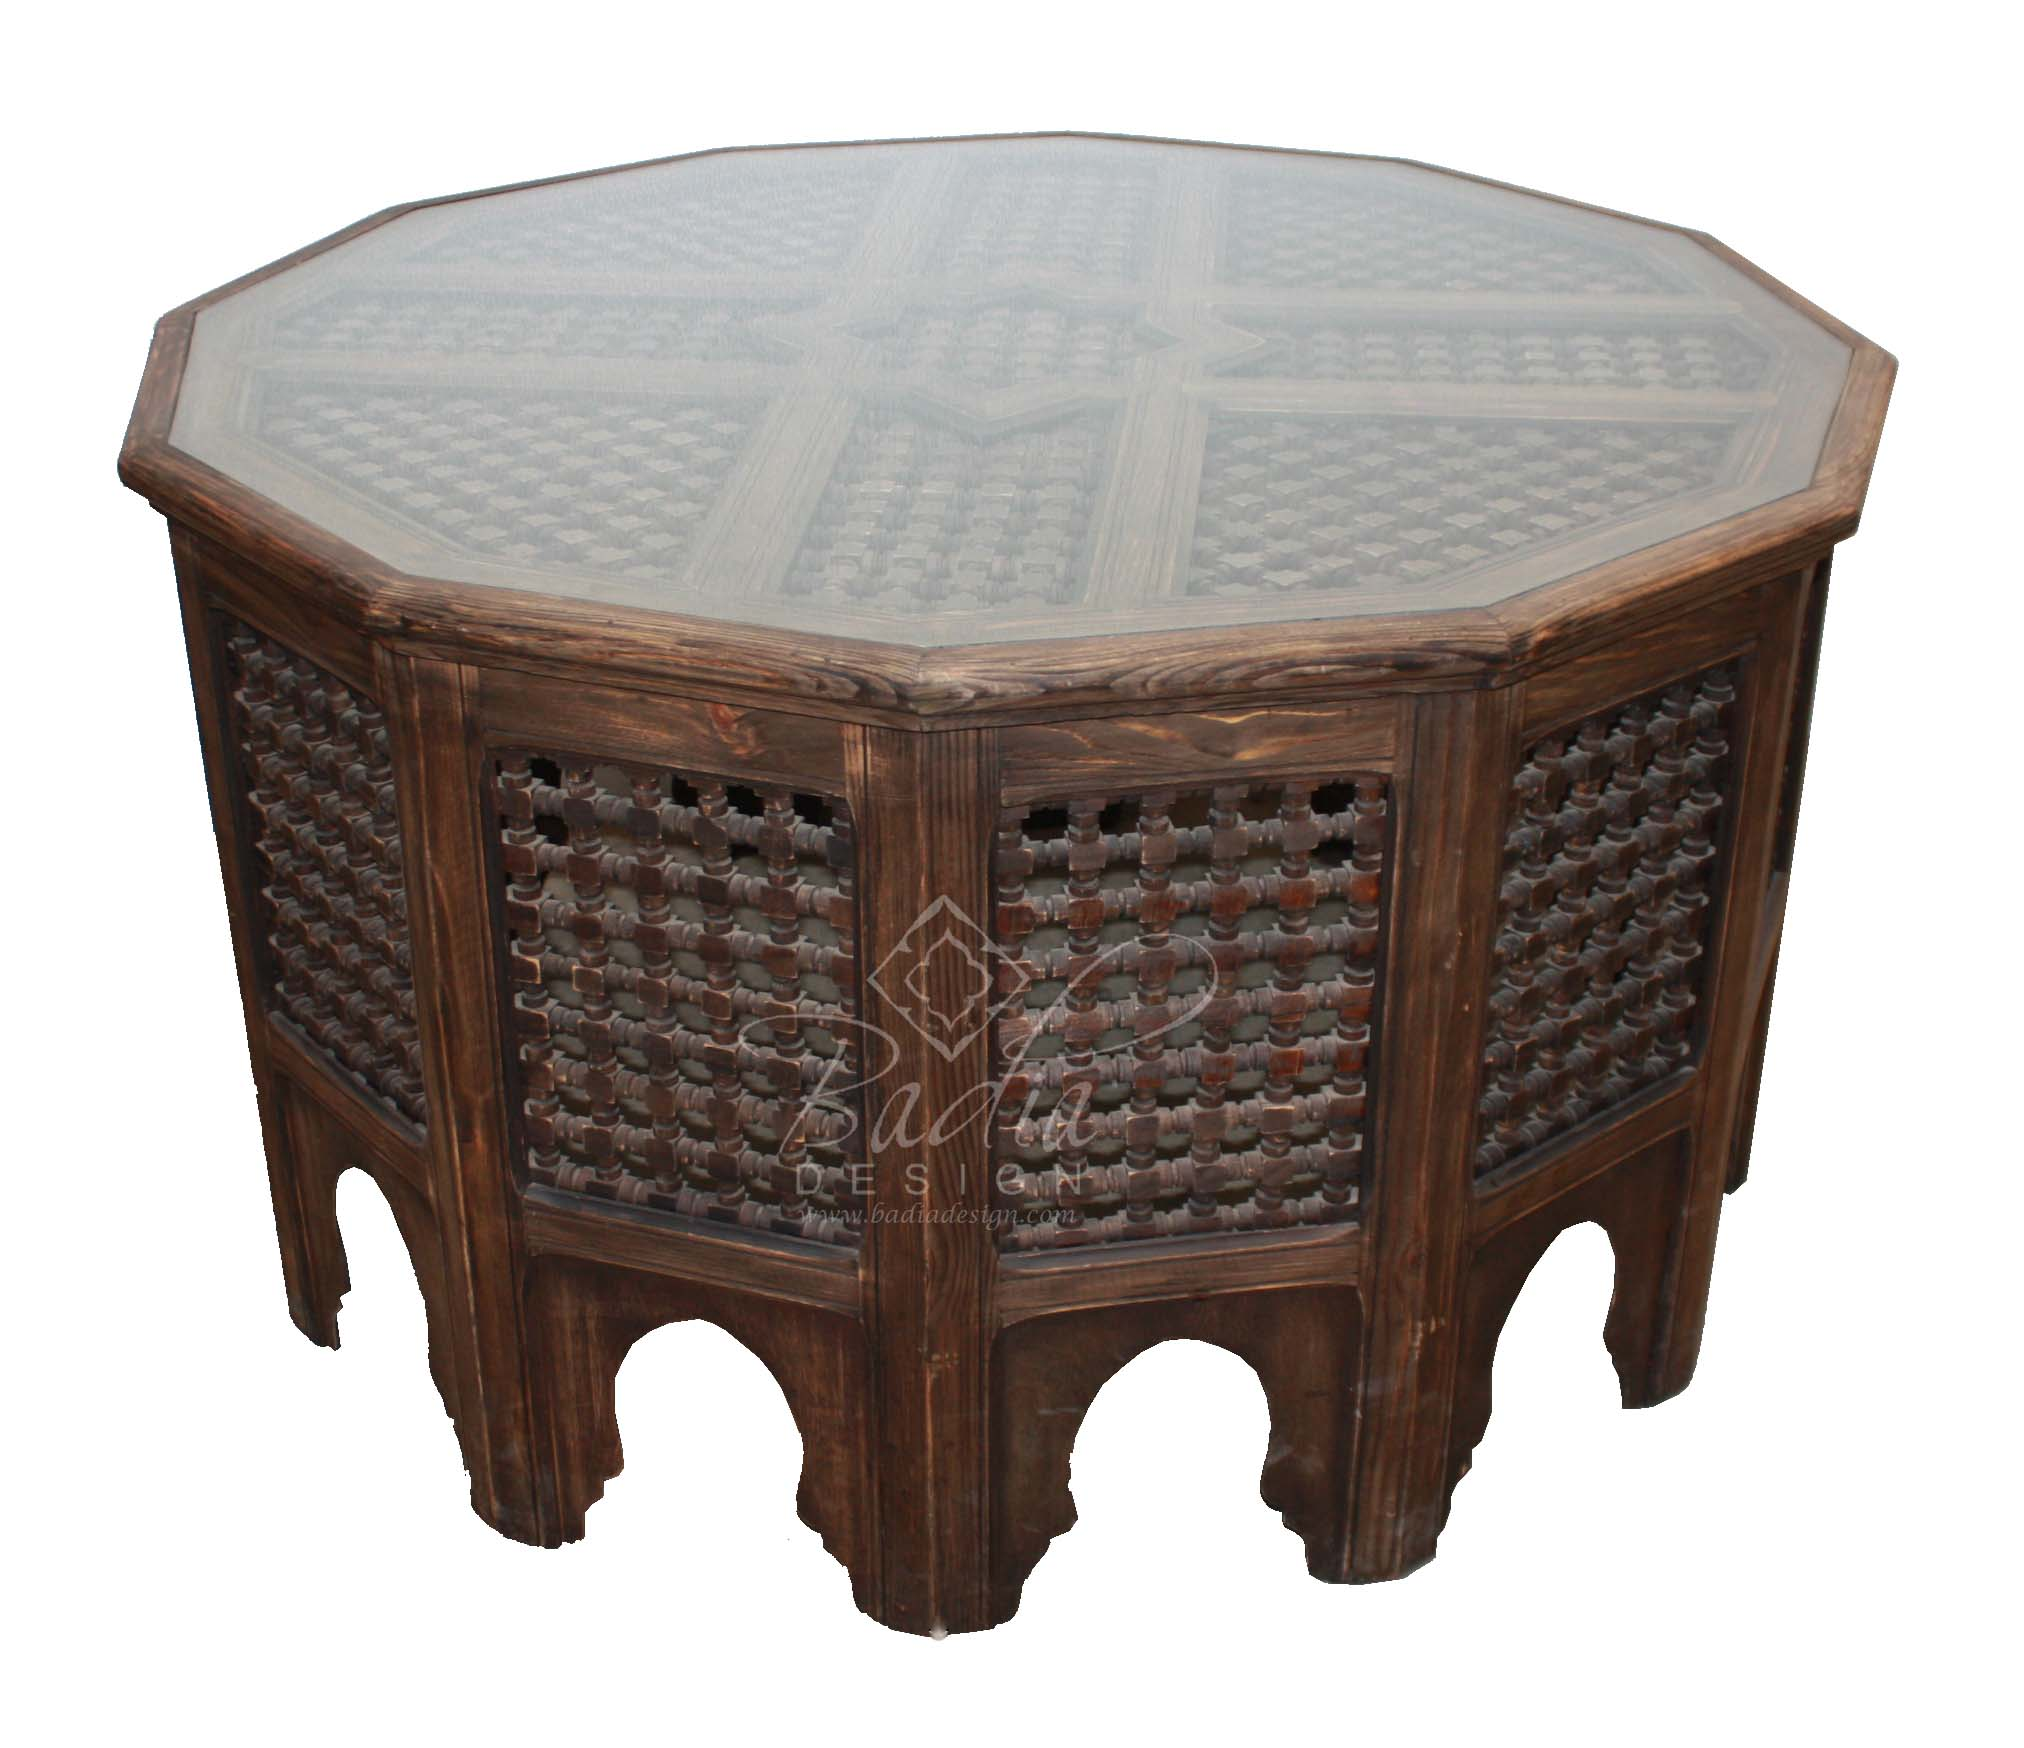 large-wooden-moucharabieh-coffee-table-cw-st057.jpg